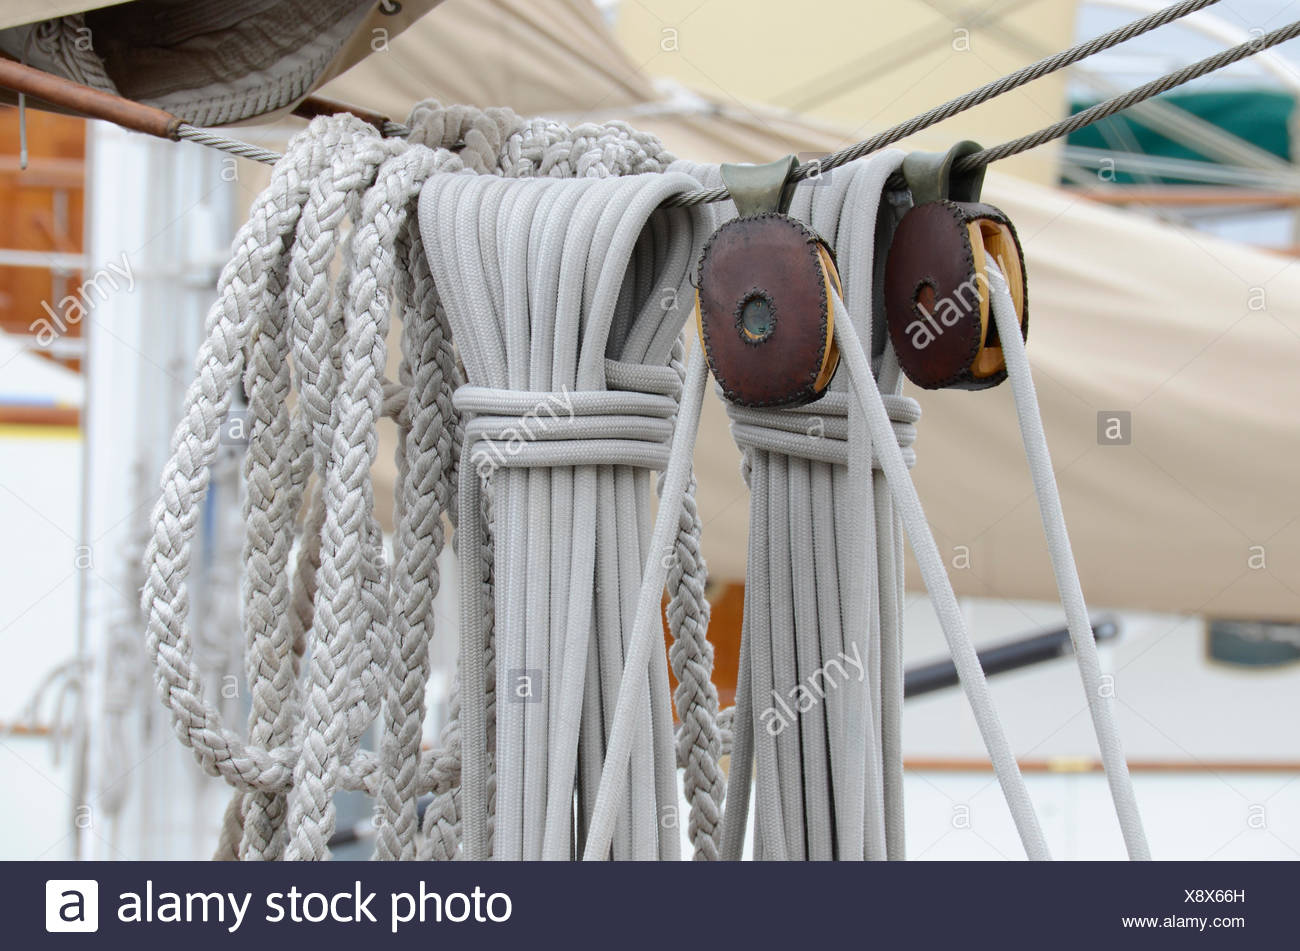 Wounden Stock Photos & Wounden Stock Images - Alamy